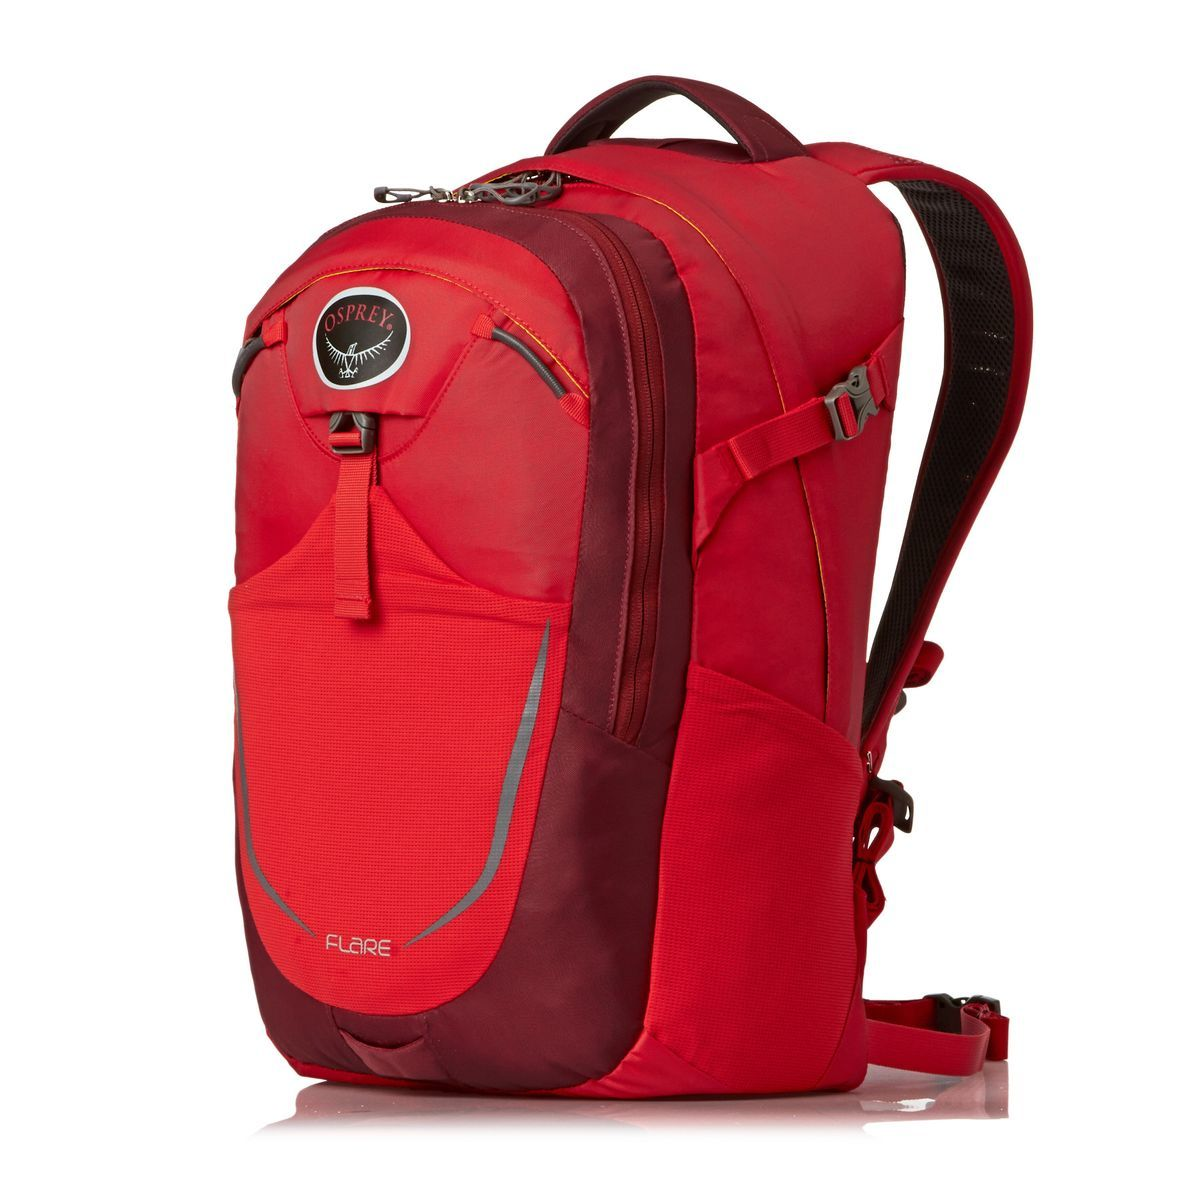 osprey-flare-22-backpack-cardinal-red.jpg